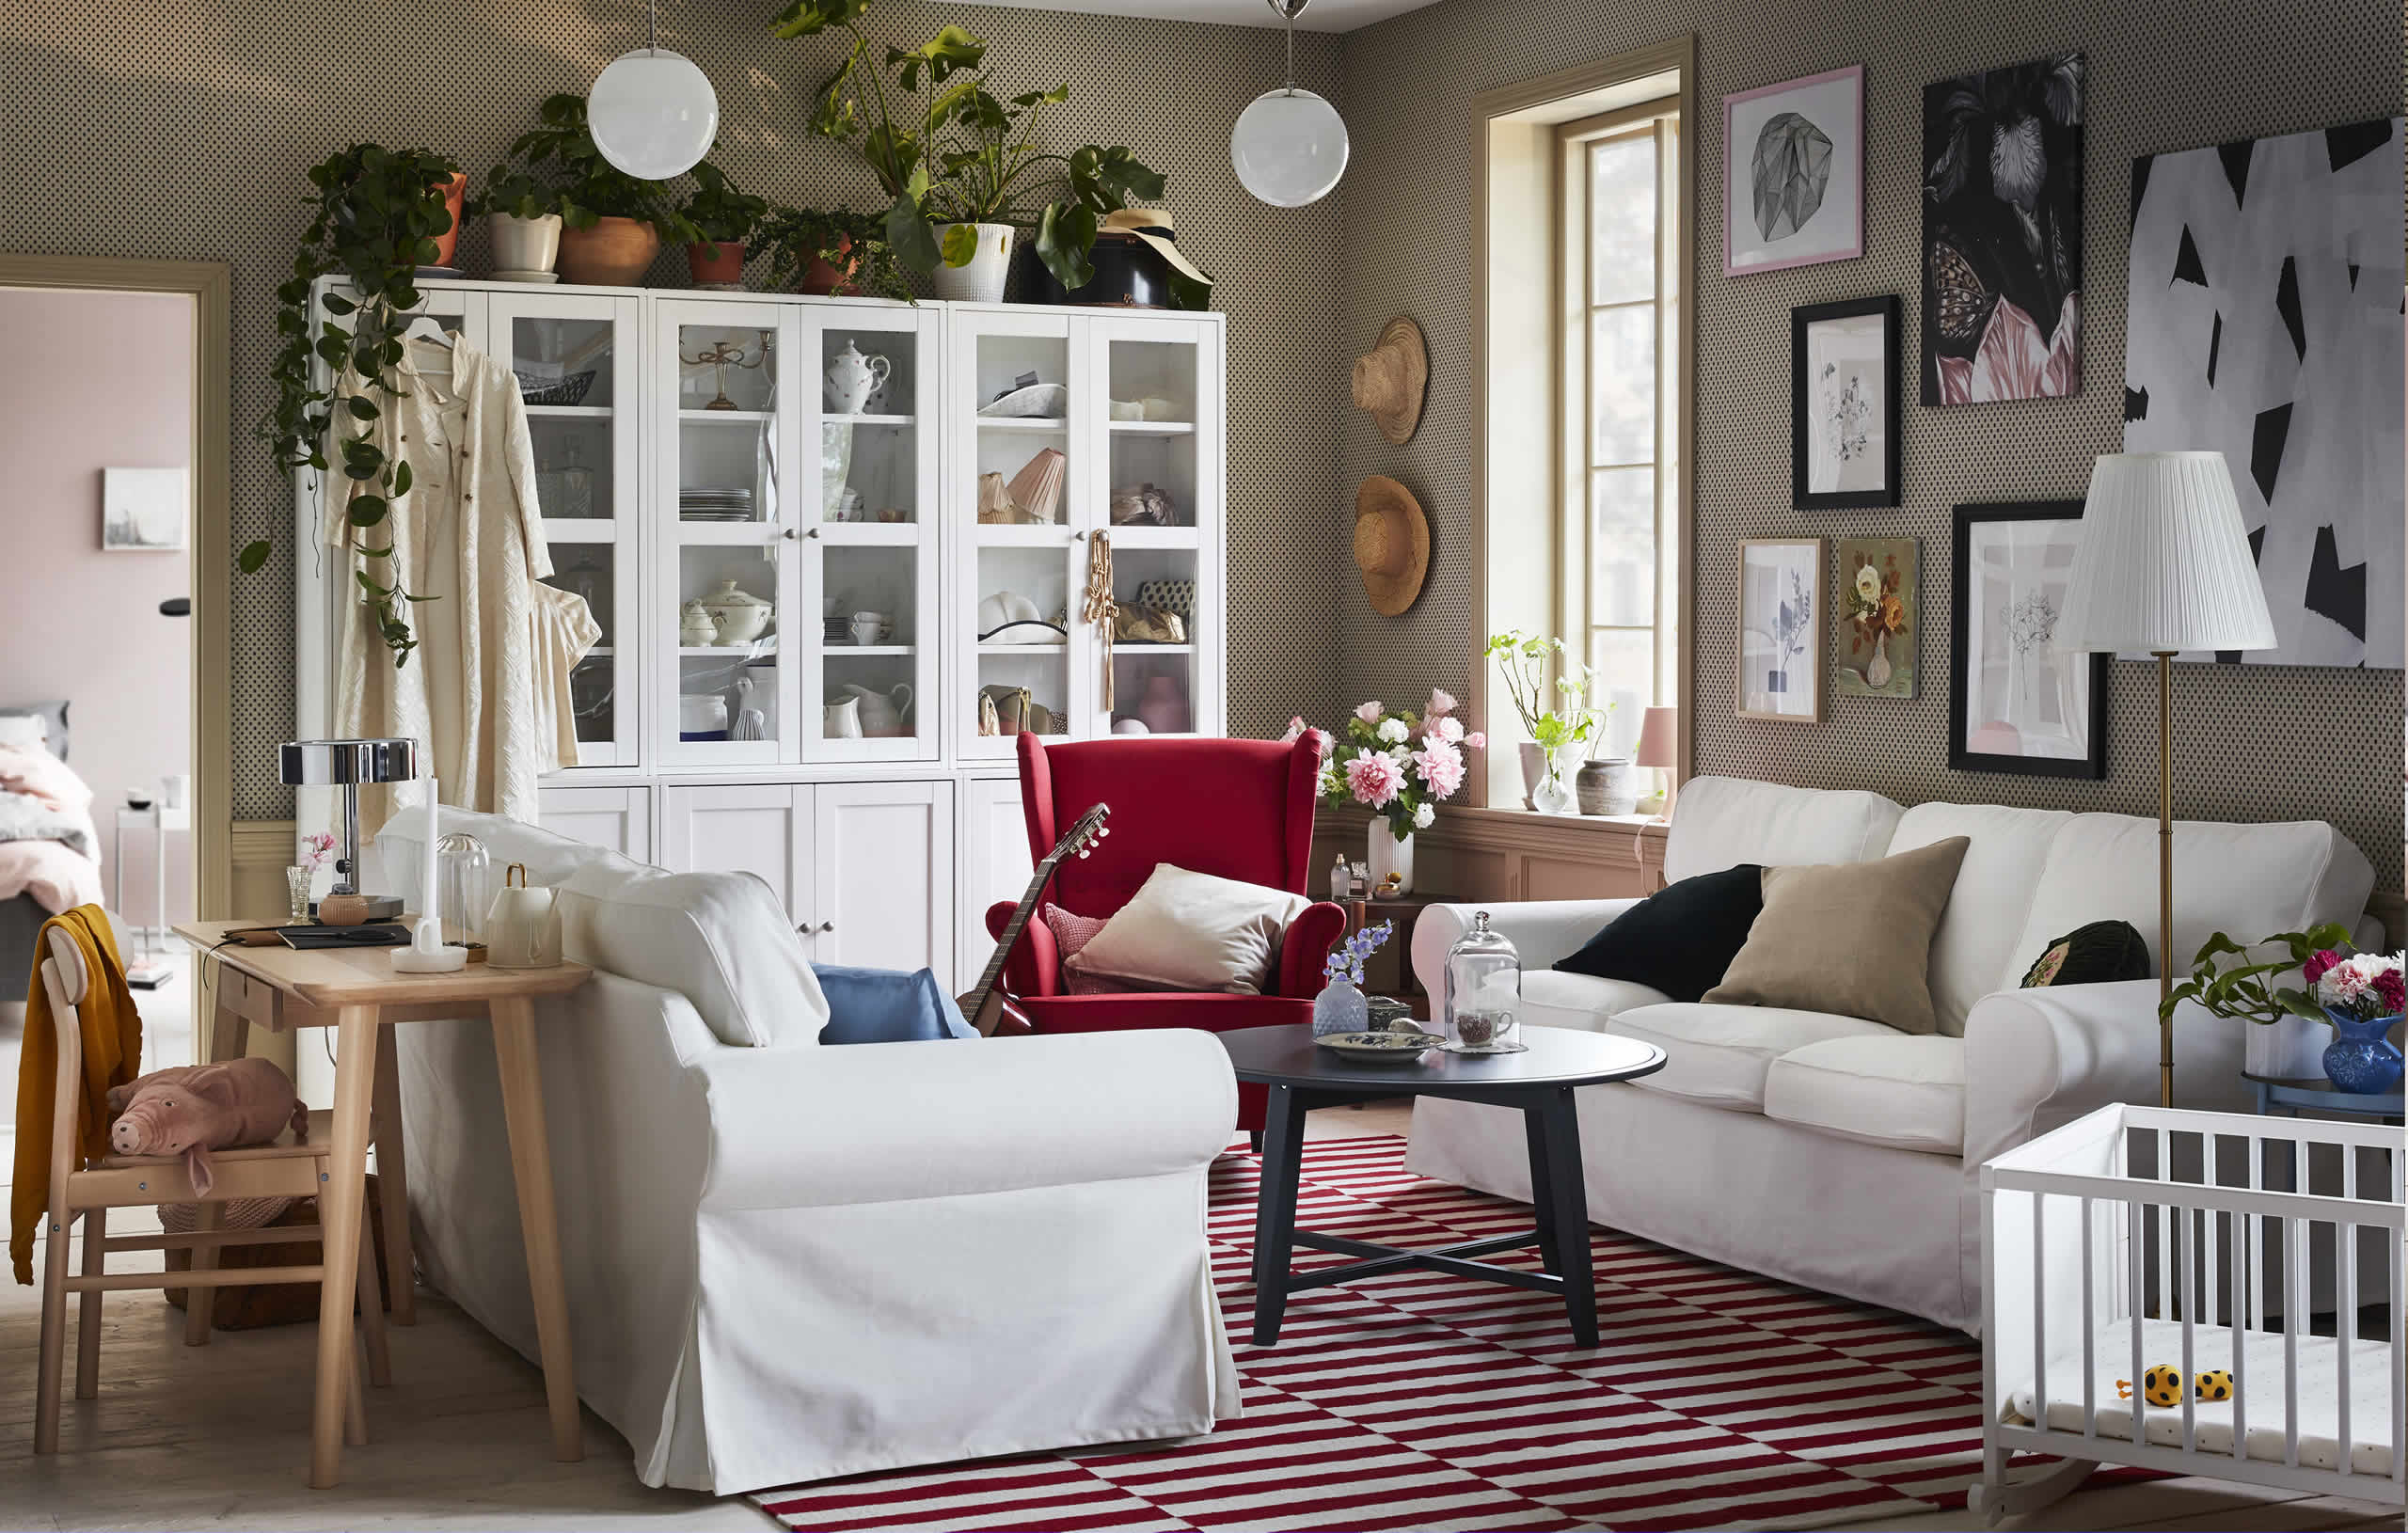 IKEA Ideas - A living room that's unquestionably you